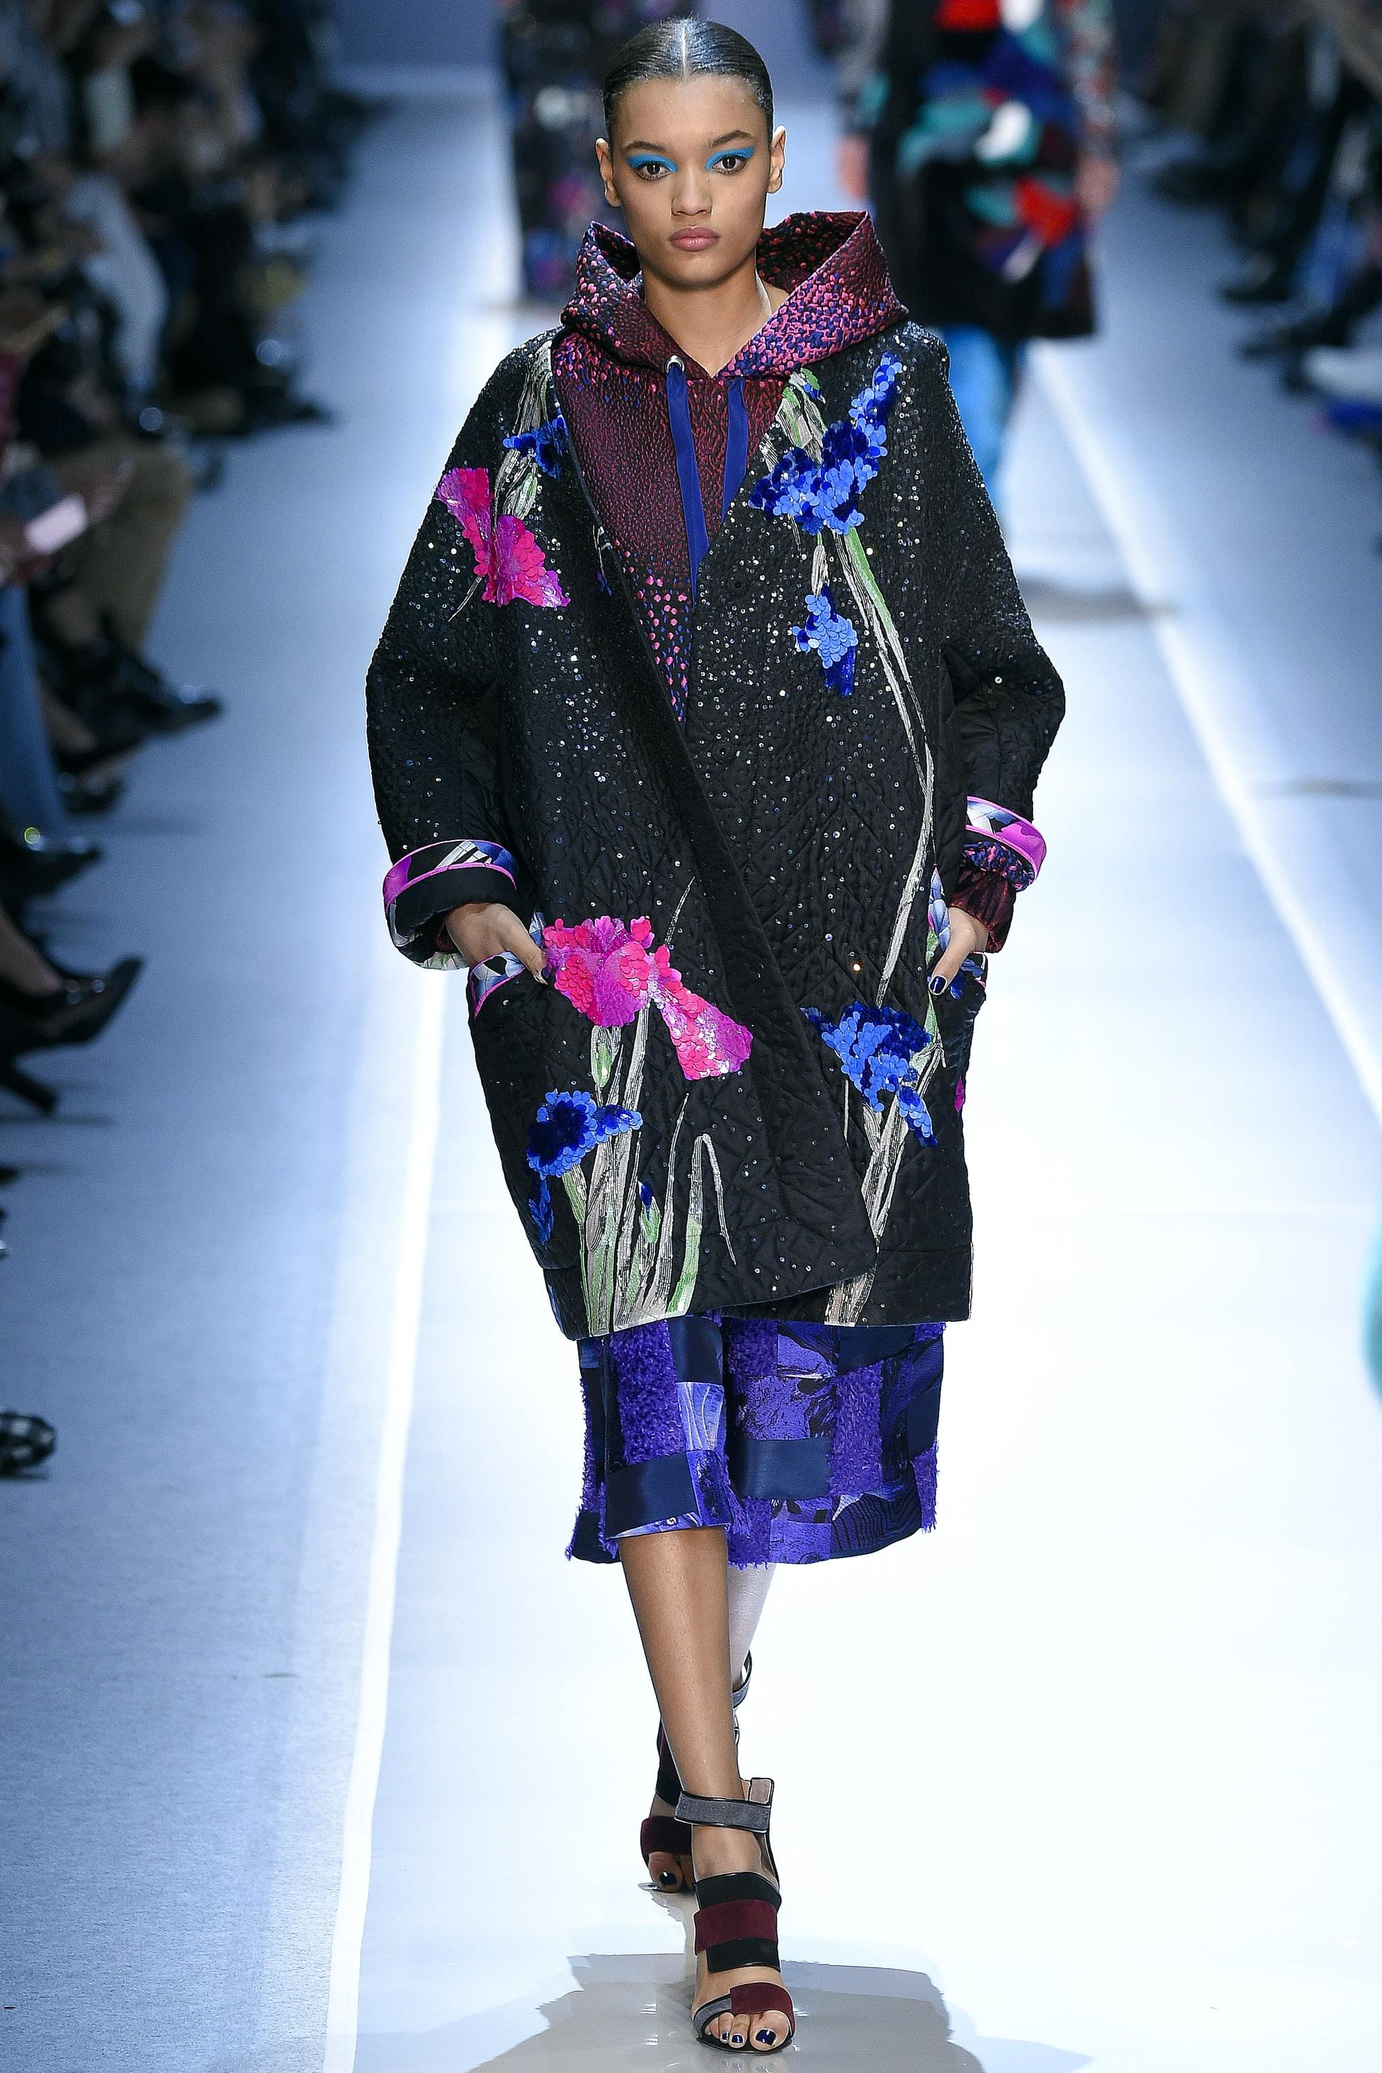 mode ethique sustainable fashion Christine-Phung-Collection-Femme-Automne-Hiver-2014-15-a-Milan-.htmlleonard parsis christine phung